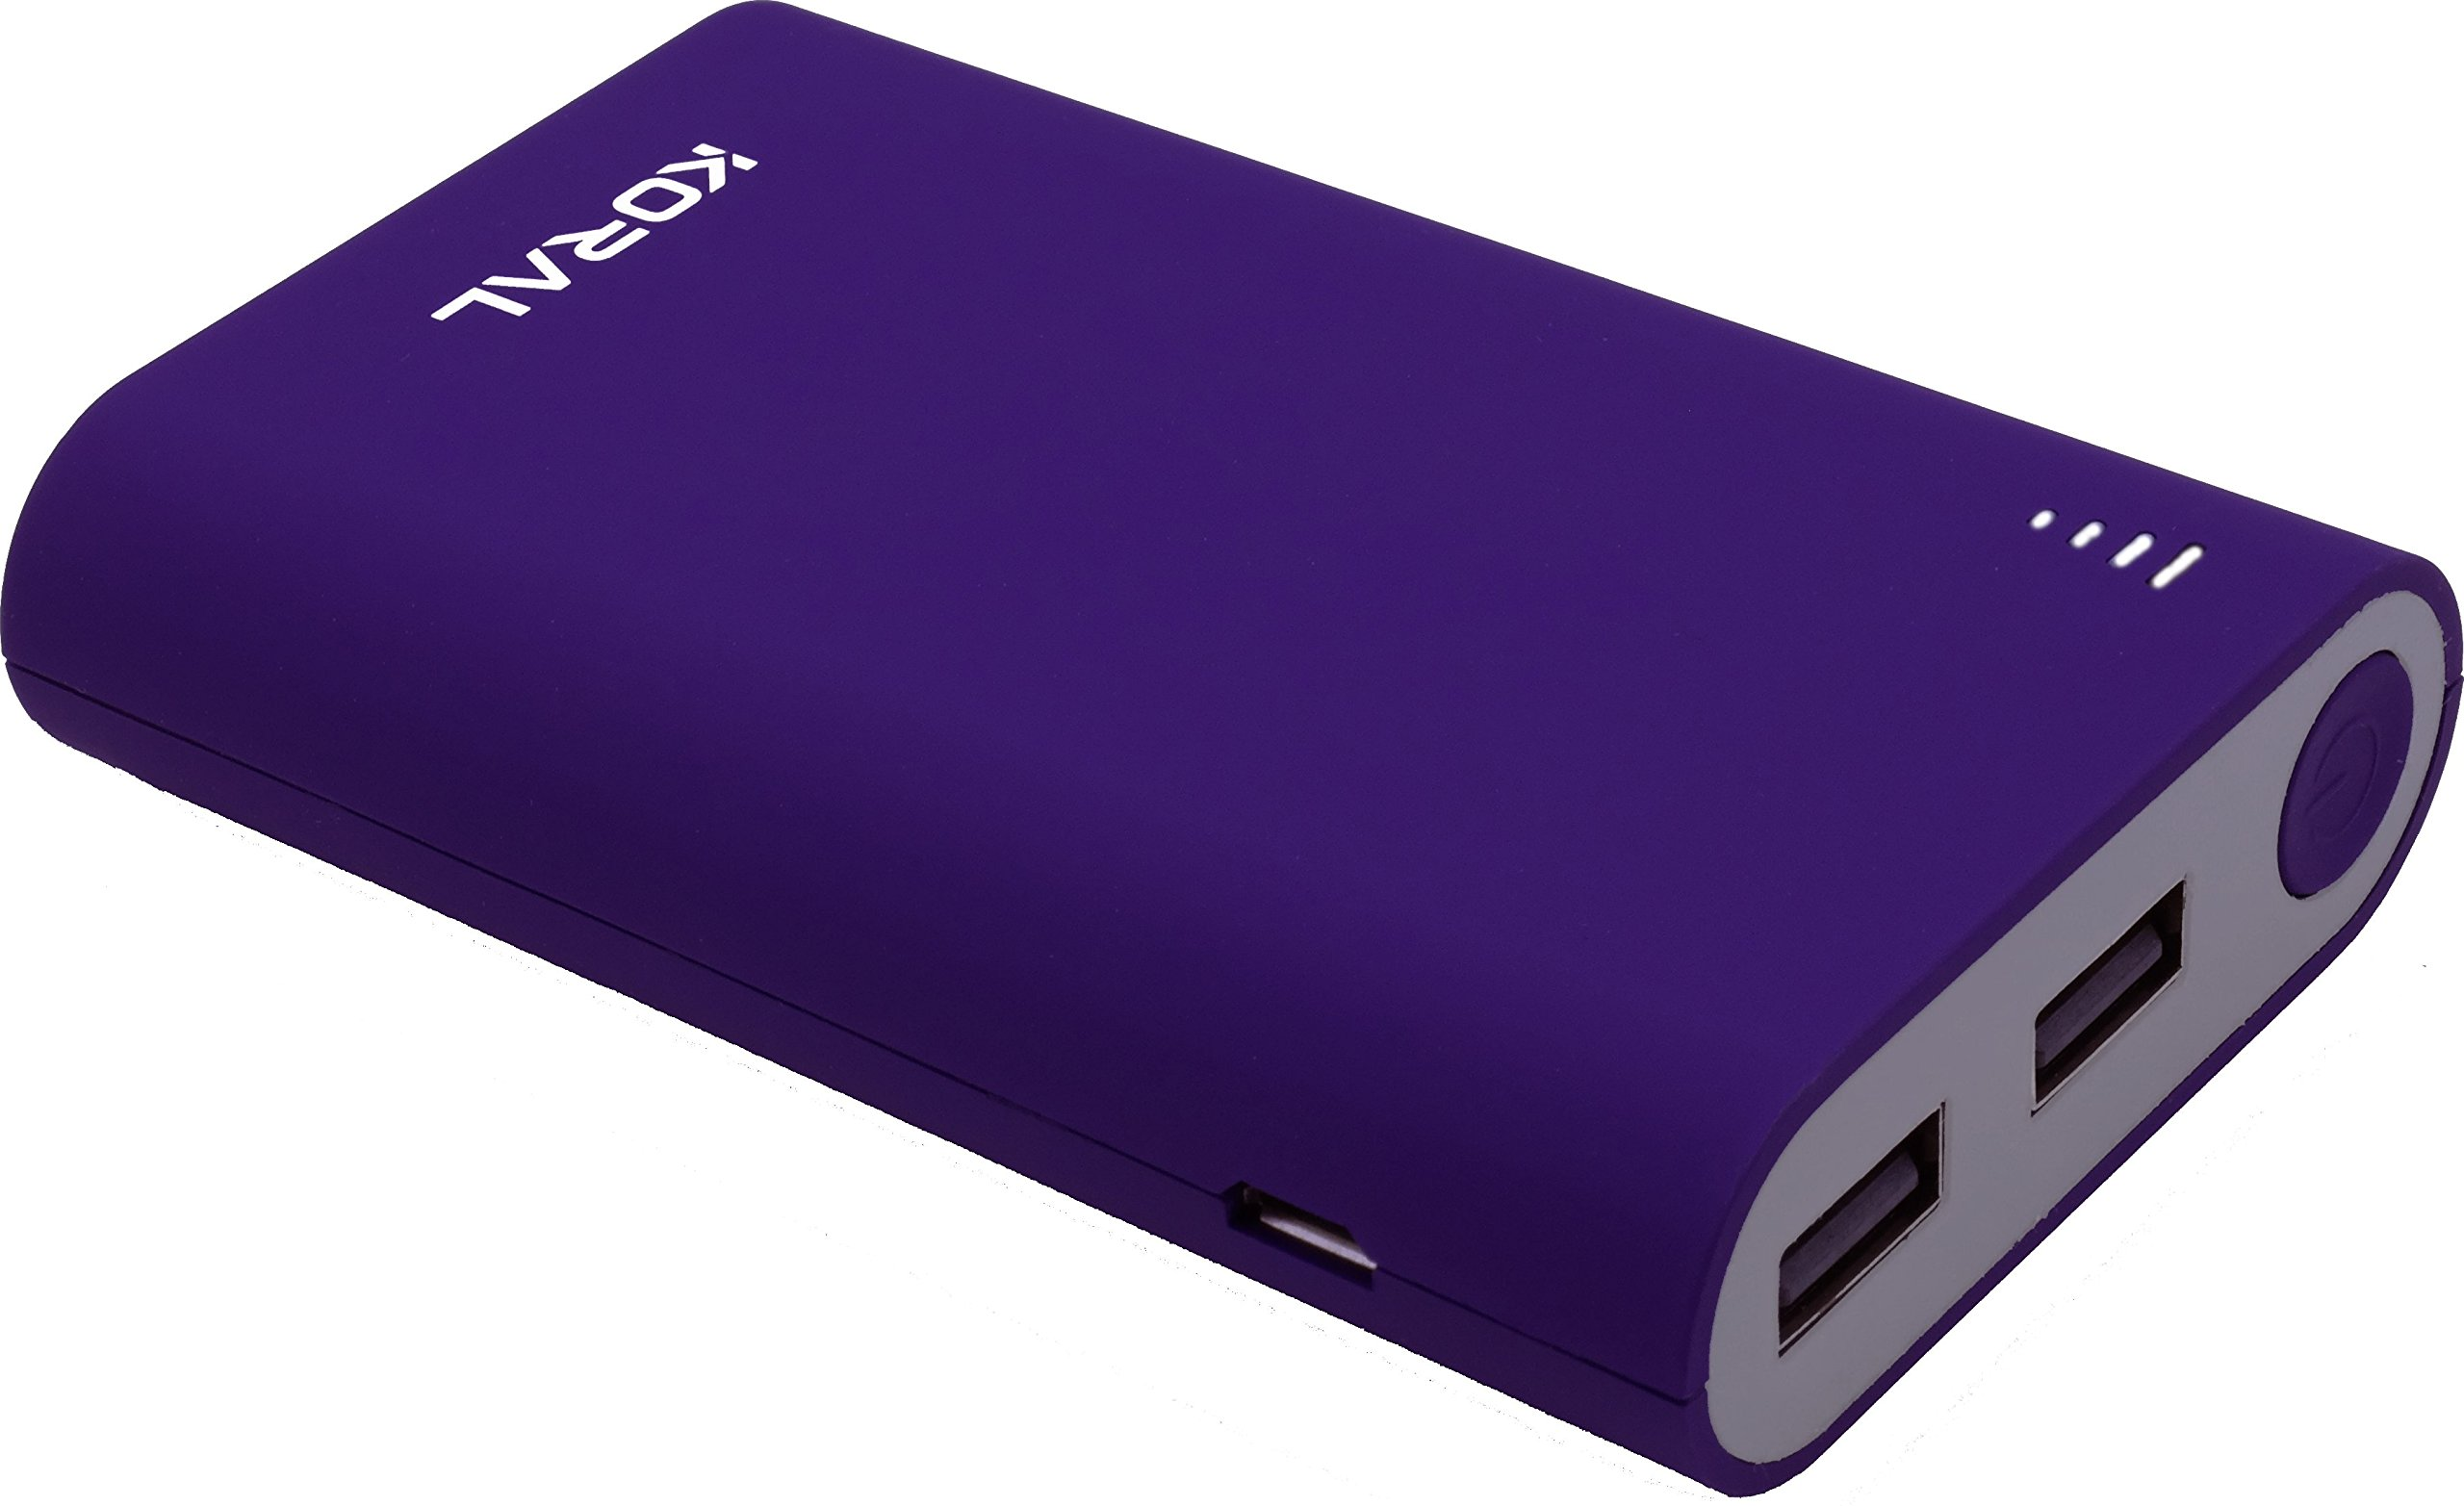 Koral 10050 Portable Charger - 10050mAh Power Bank (External Battery) for Iphone 6, 7, 8, X , Samsung Galaxy, & all Android - Purple